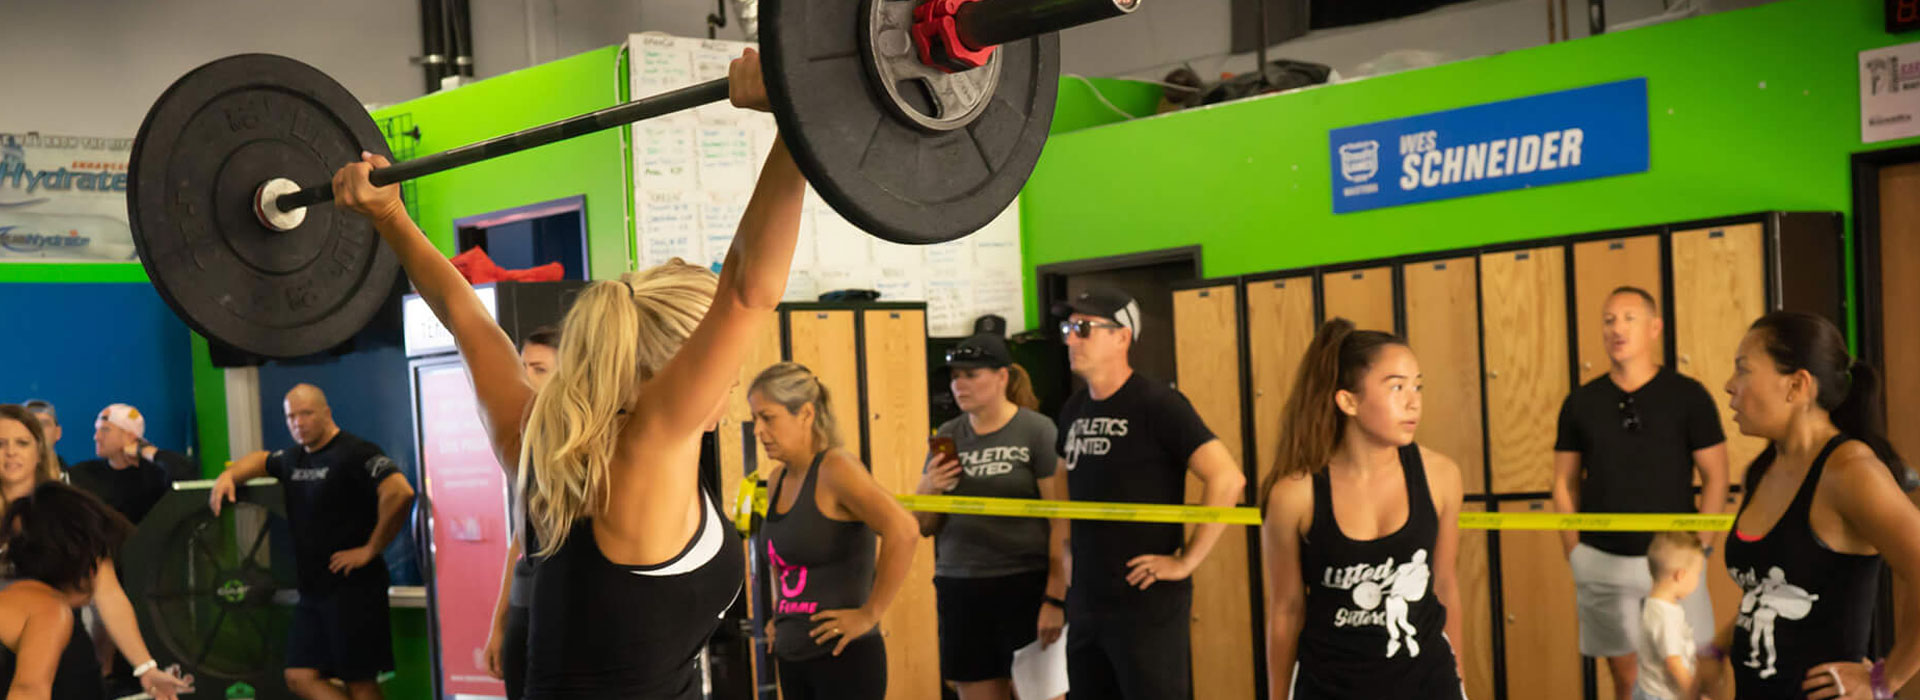 A Gym In Riverside That Can Help With Weight Loss & Nutrition Coaching